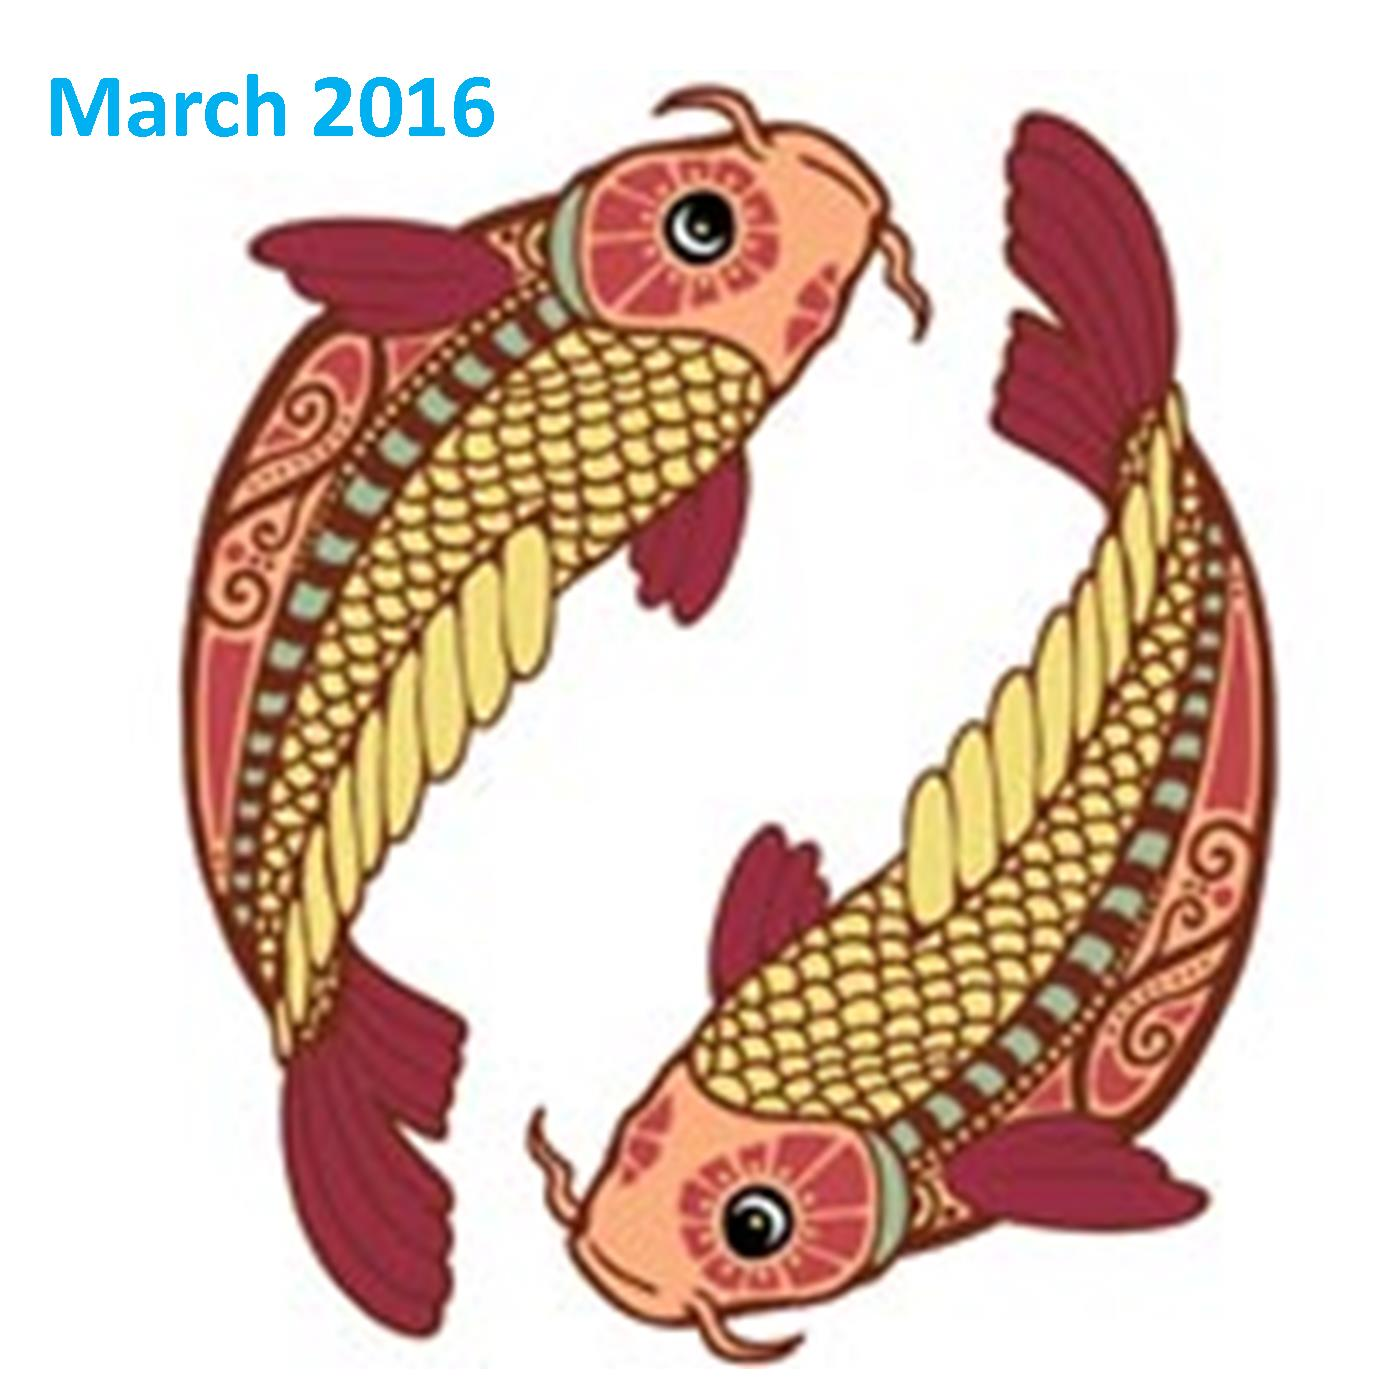 March 2016 Energetic Forecast